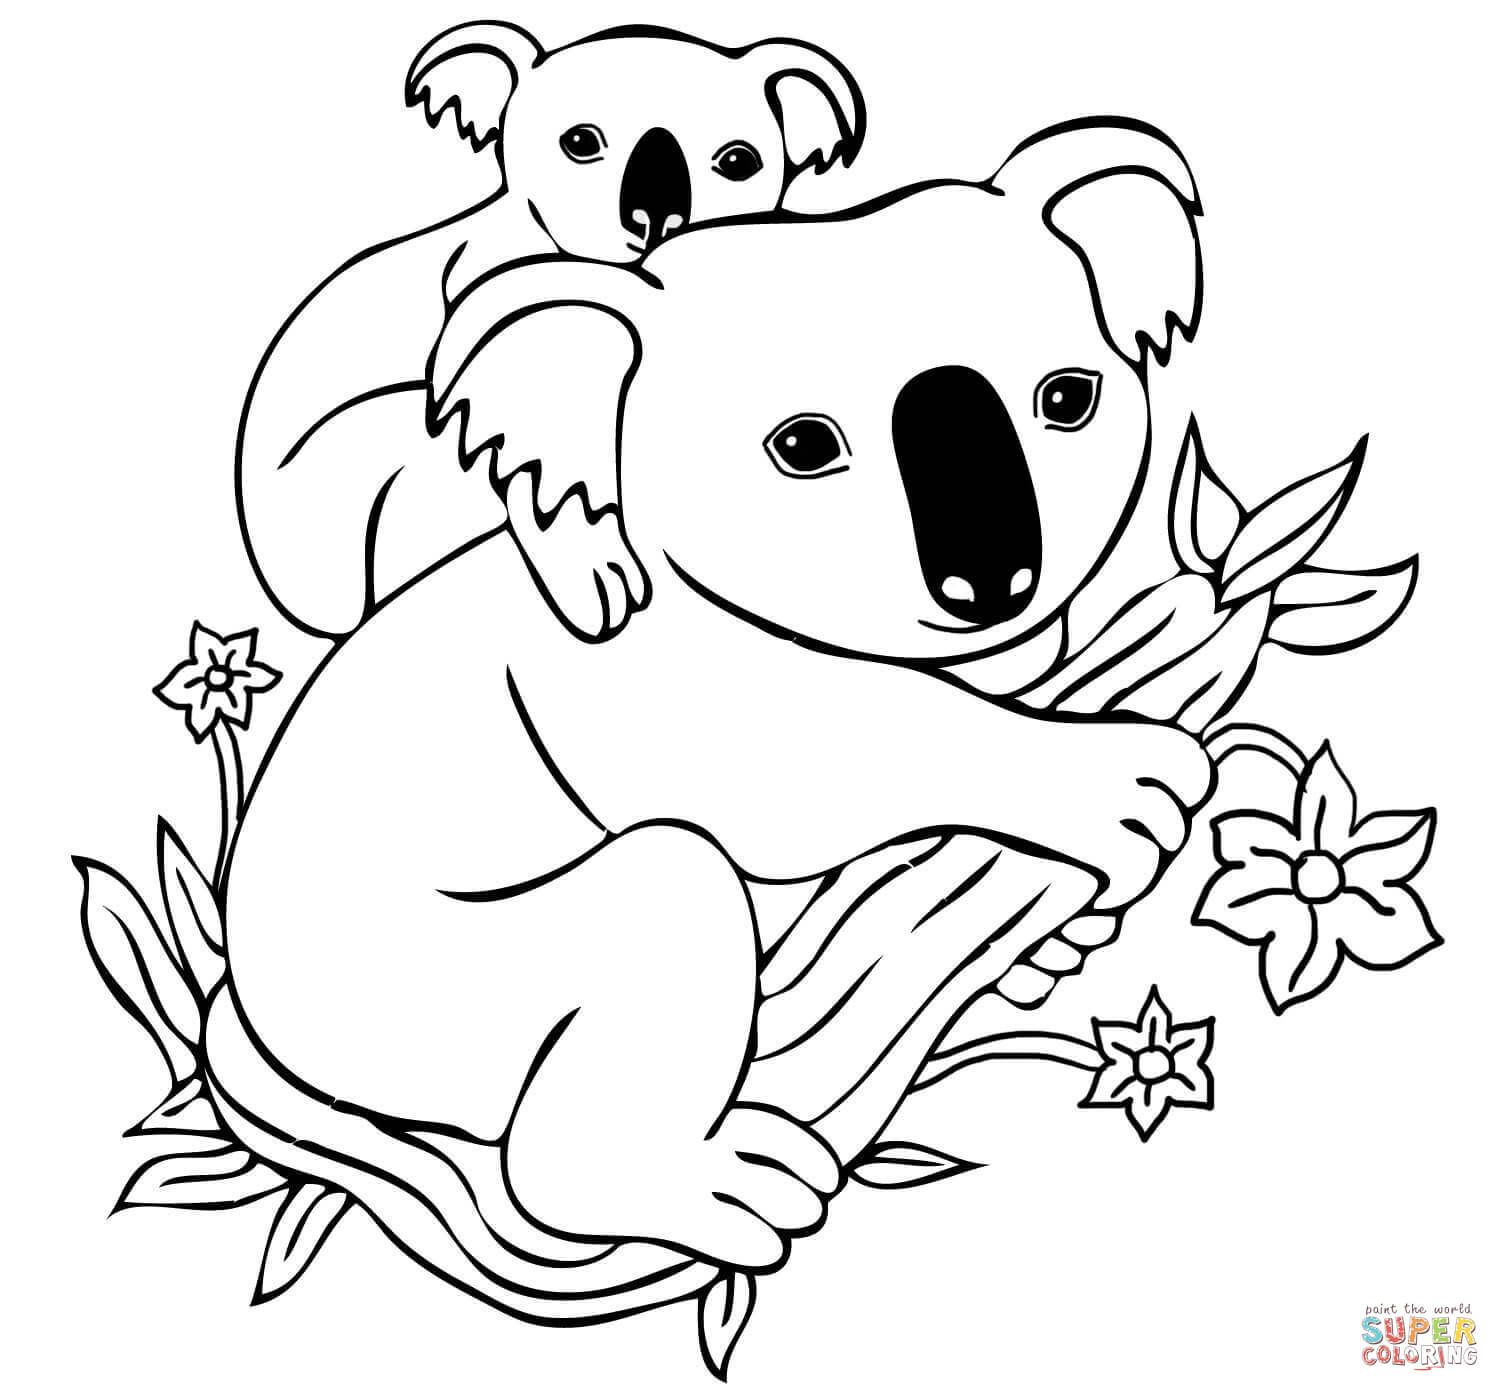 1500x1392 Baby Koala On Mothers Back Coloring Page At Koala Coloring Pages